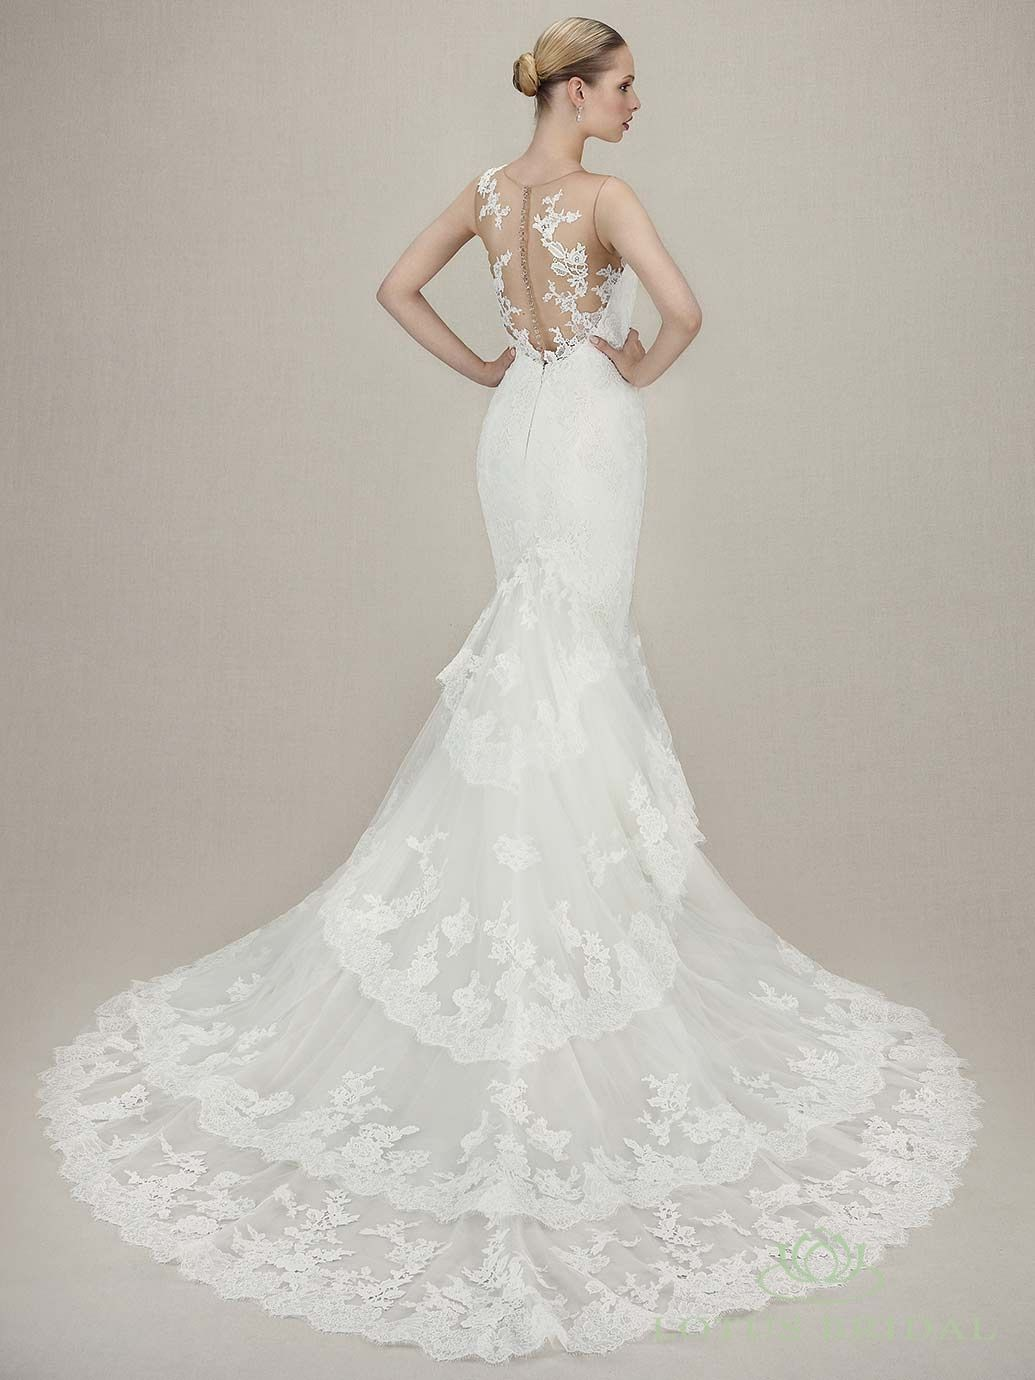 Lotus bridal enzoani kasia i like this silhouette and lace back